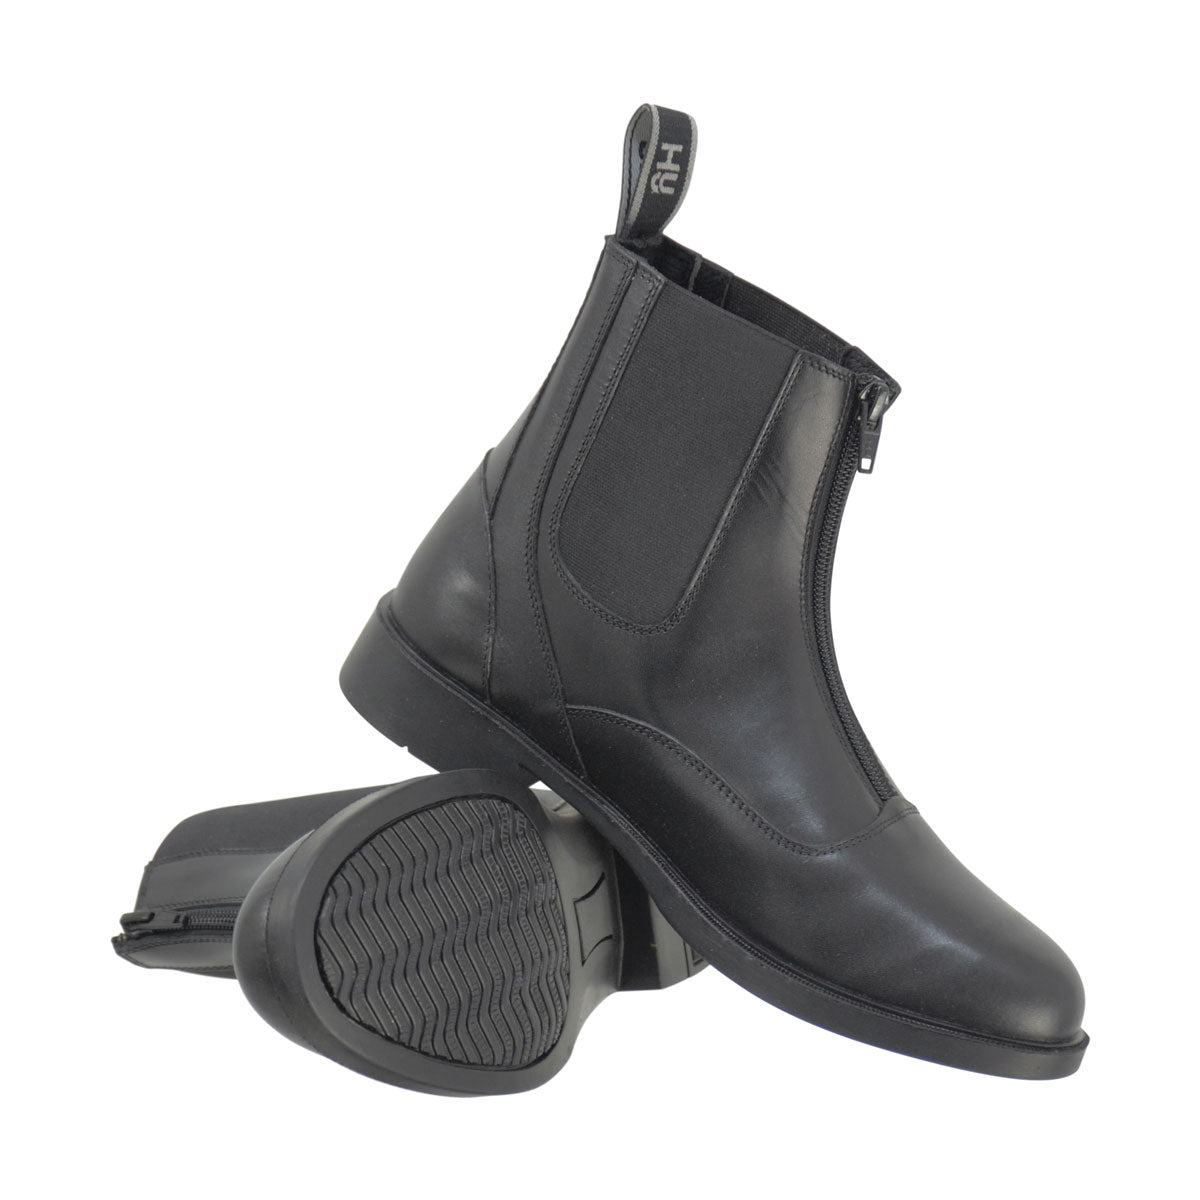 HyLAND HyLAND Southwold Leather Zip Paddock Boot